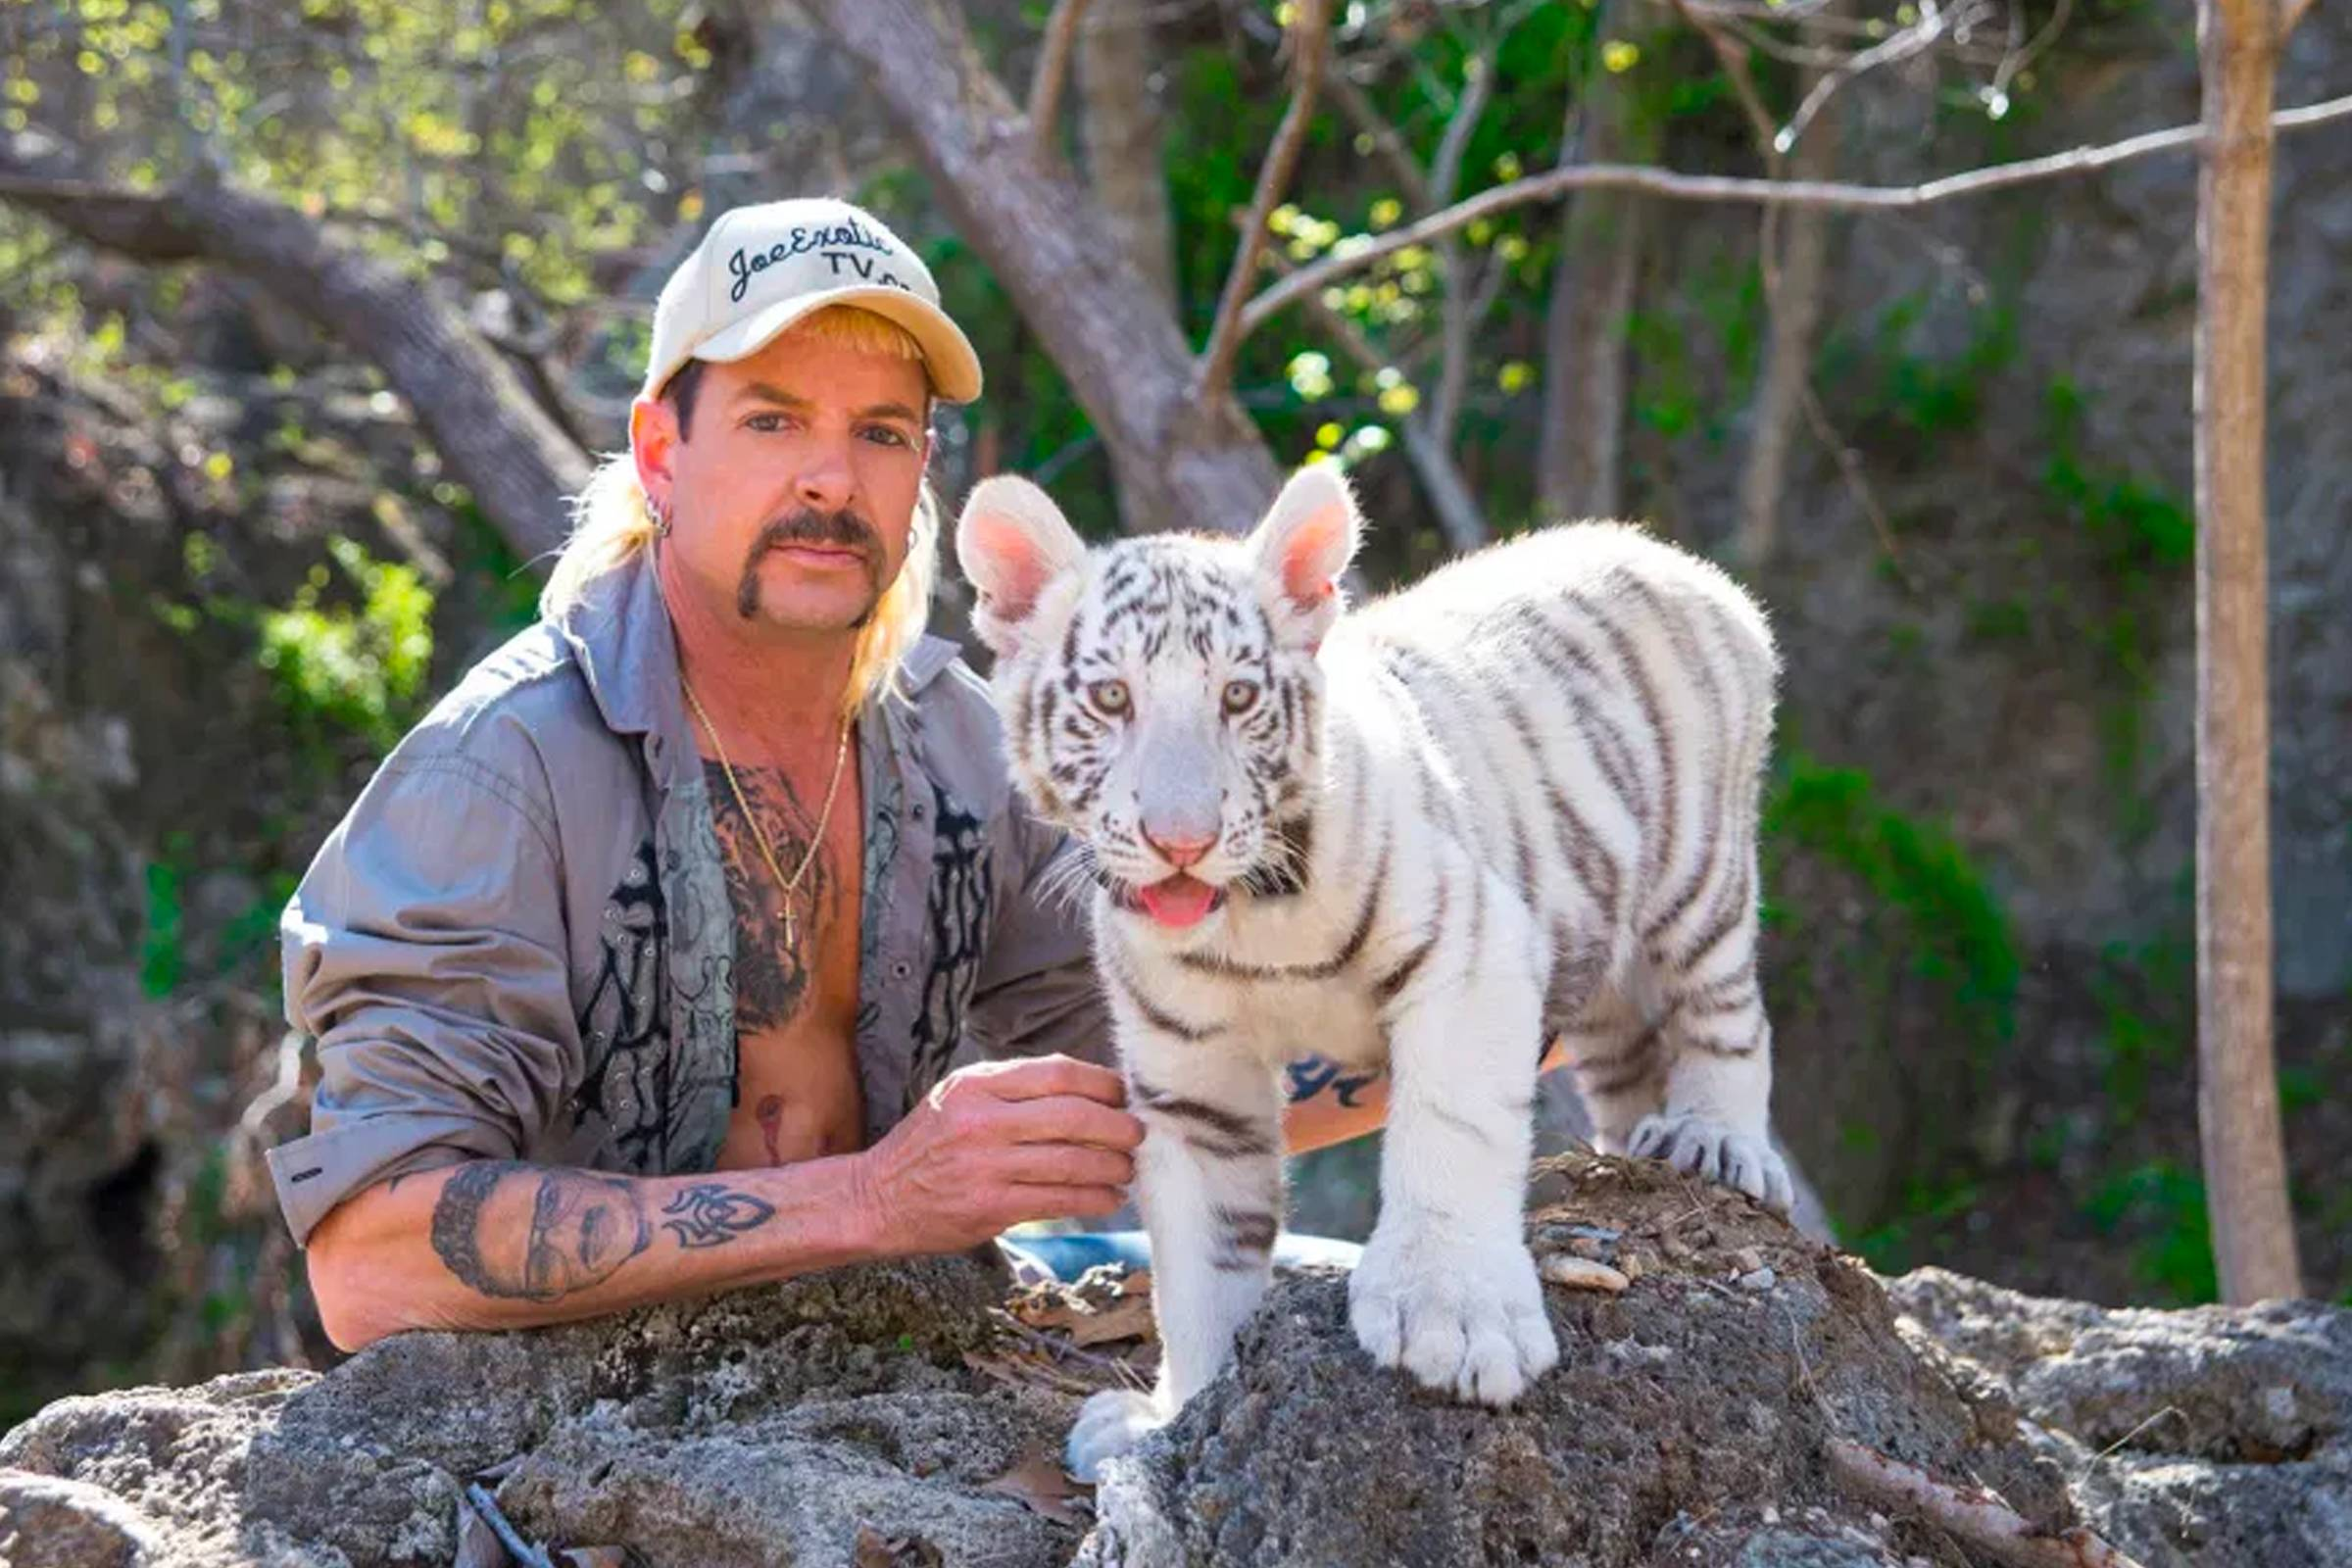 Joe Exotic Style | Tiger King on Netflix Style | Grailed